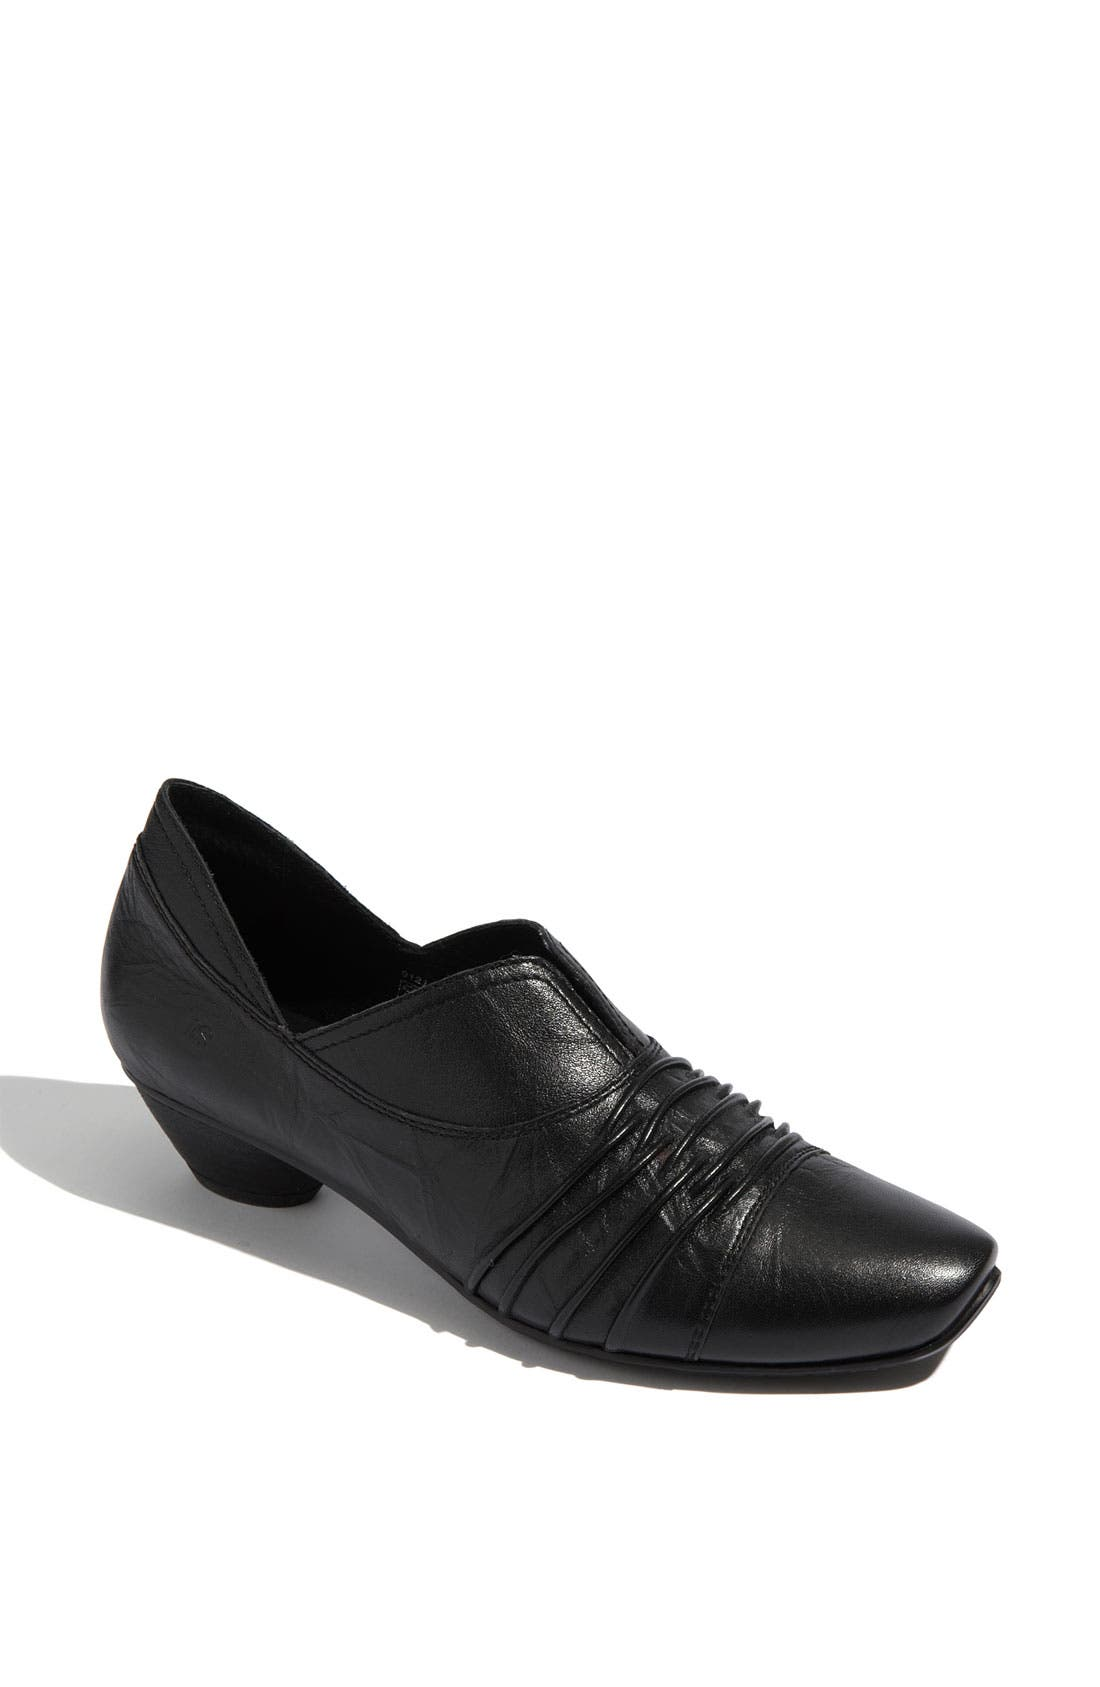 Main Image - Josef Seibel 'Tina' Slip-On